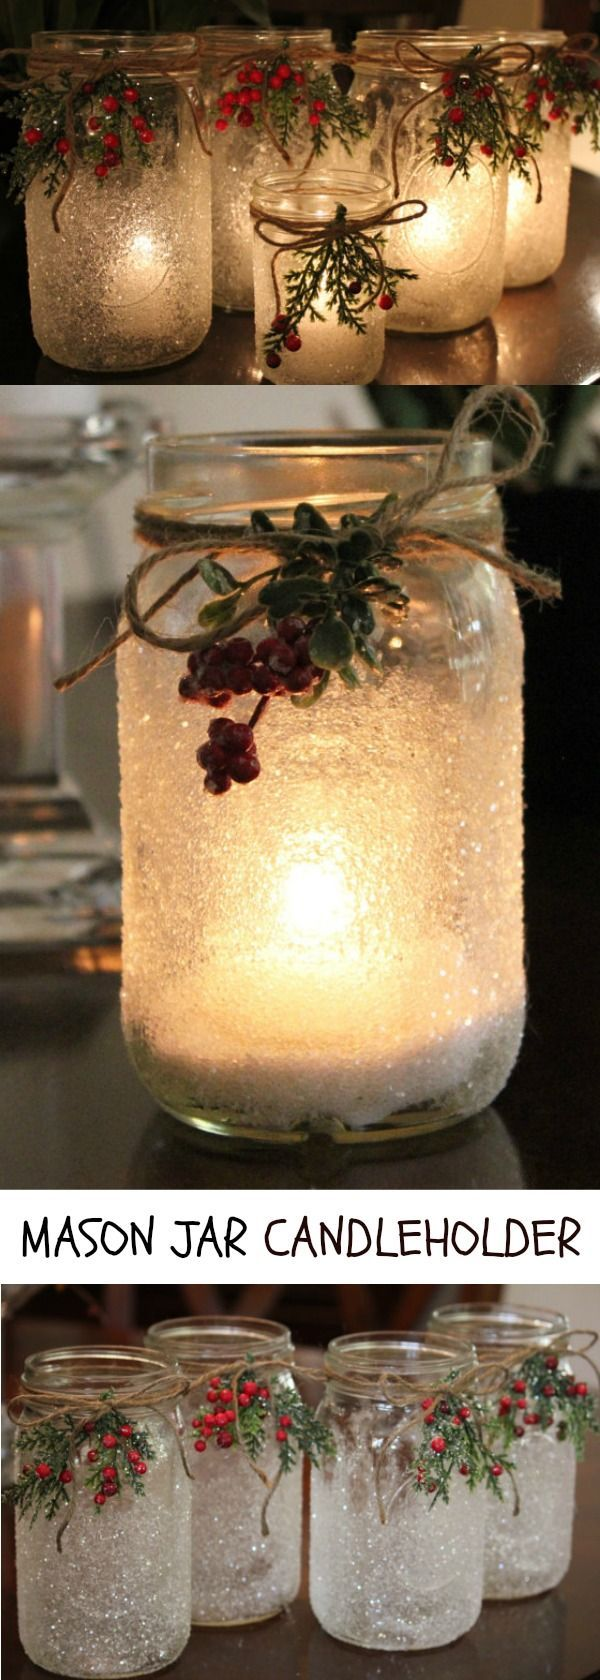 Beautiful Love these Christmas/holiday themed mason jar candleholder.  #christmas #masonjar #candleholder #ad